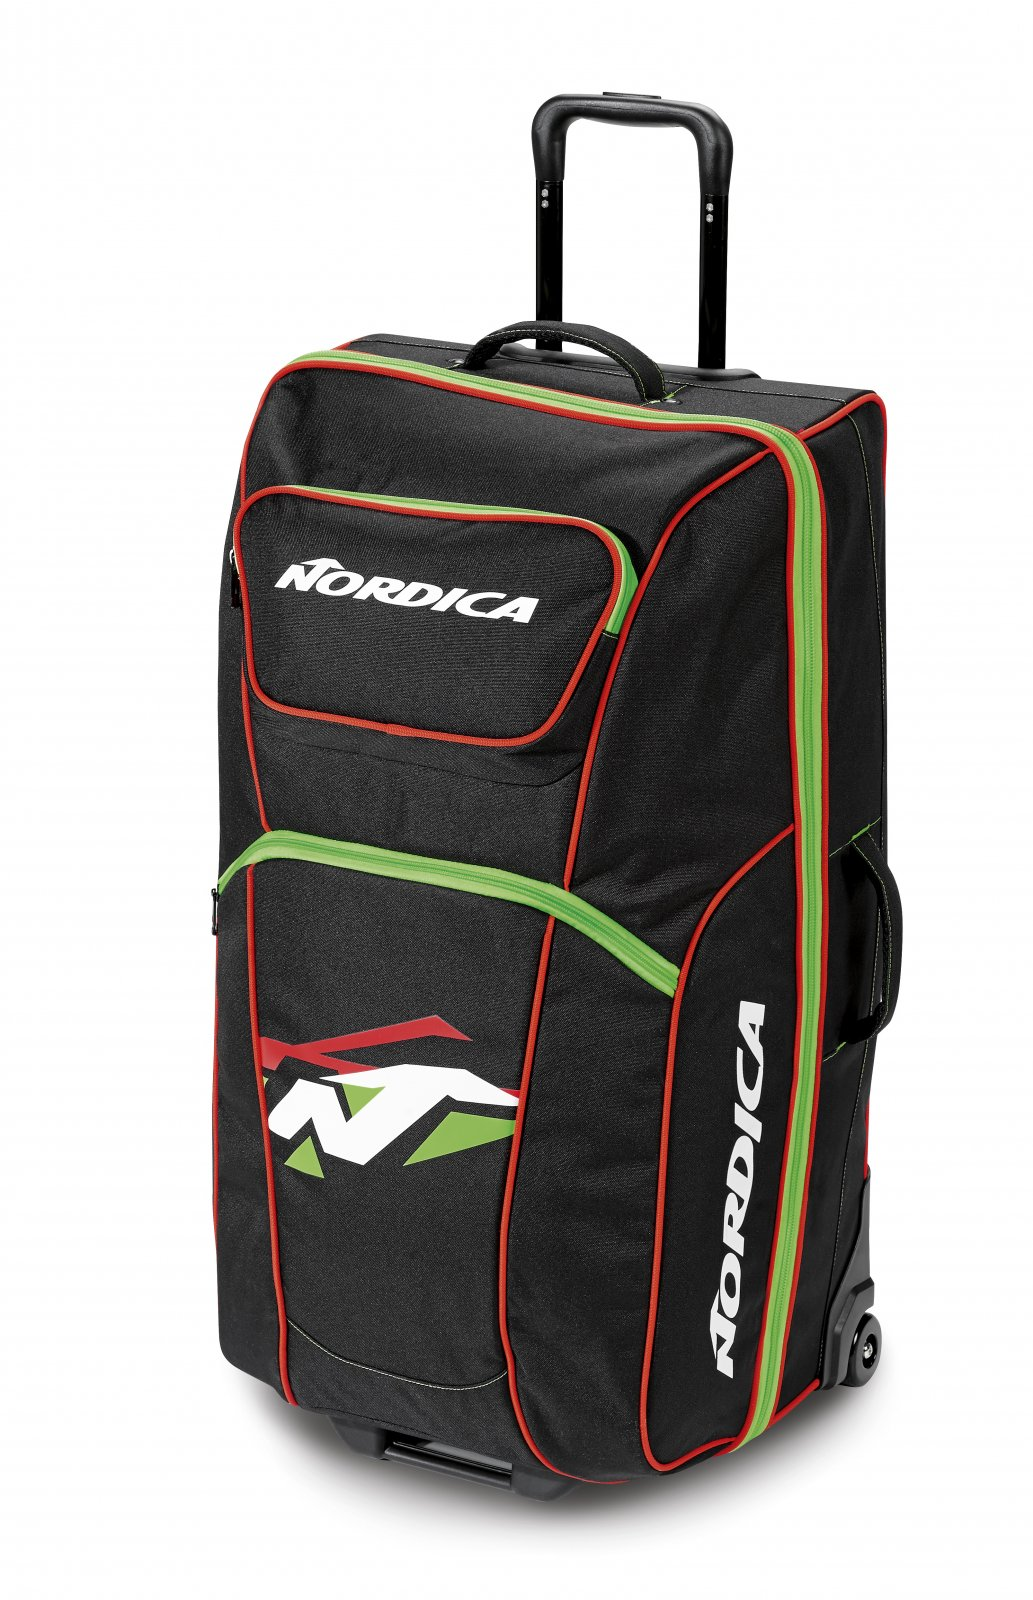 Nordica Race XL Trolley